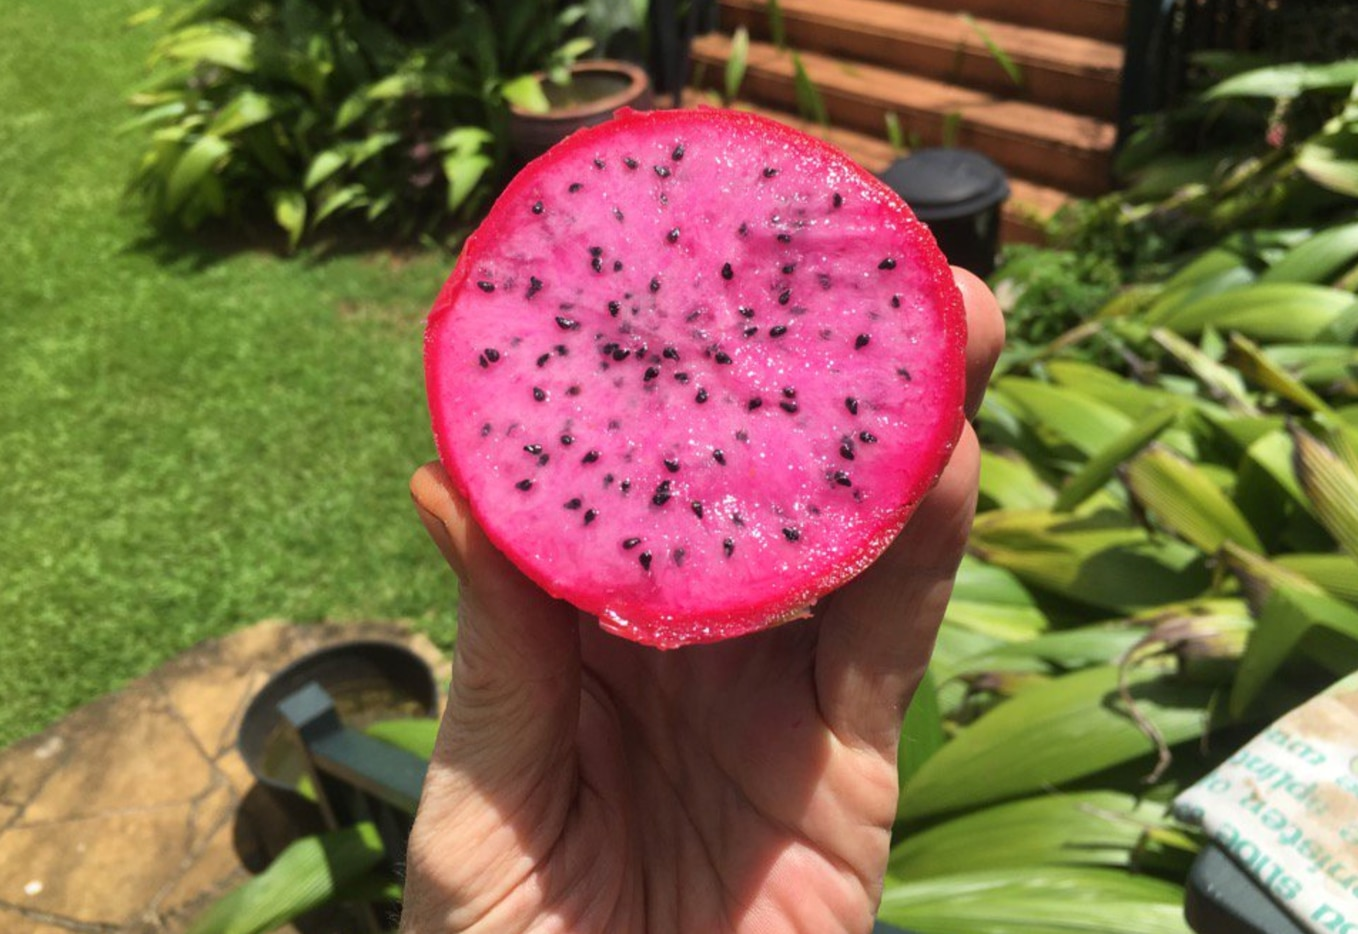 Kevin palms a Dragon Fruit, which sort of resembles a pink kiwi on the inside.